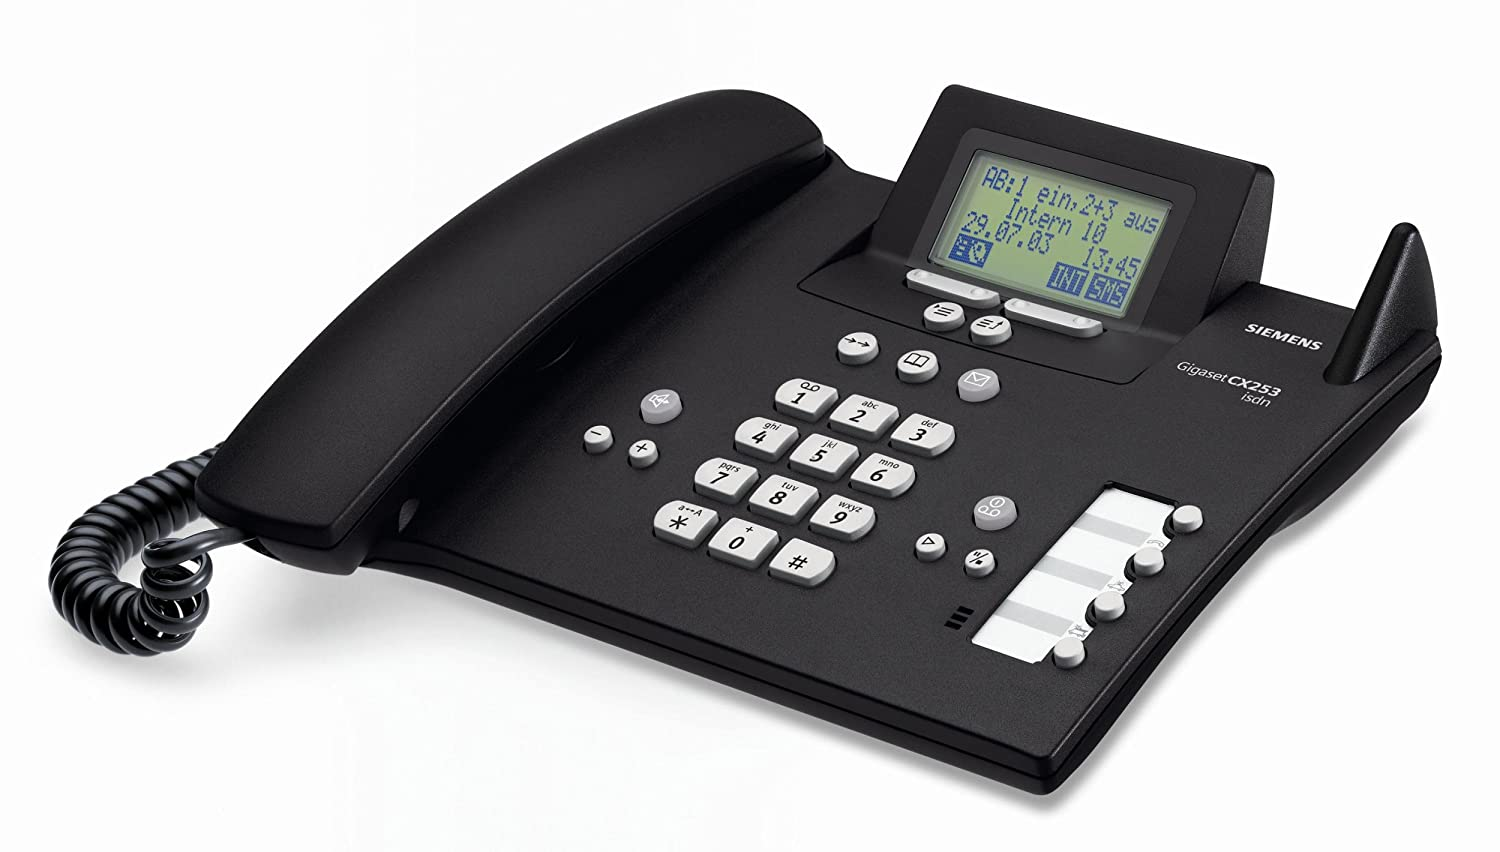 siemens gigaset cx 253 isdn basis telefon mit. Black Bedroom Furniture Sets. Home Design Ideas